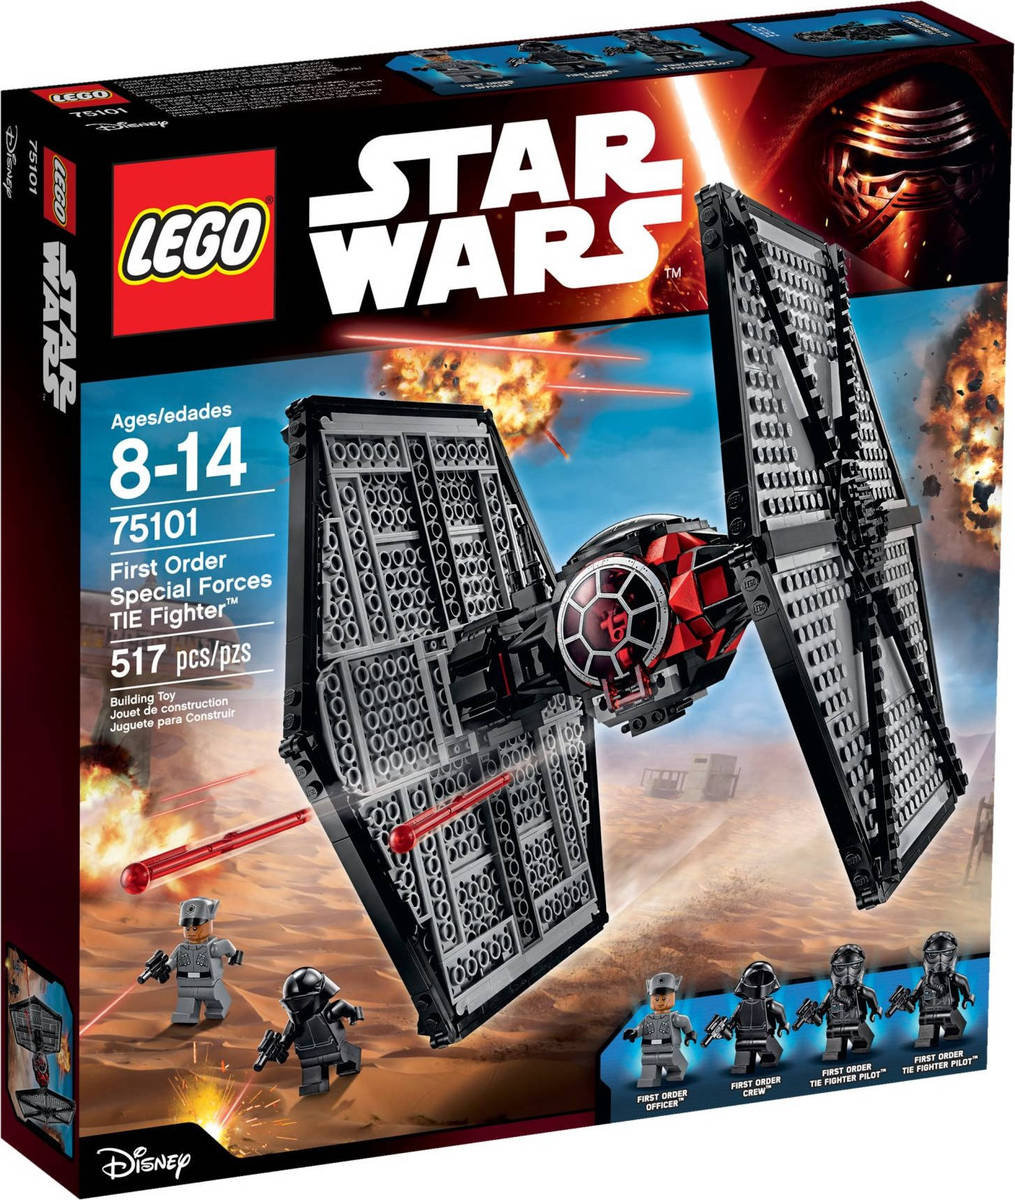 75101 - STAR WARS - FIRST ORDER SPECIAL FORCES